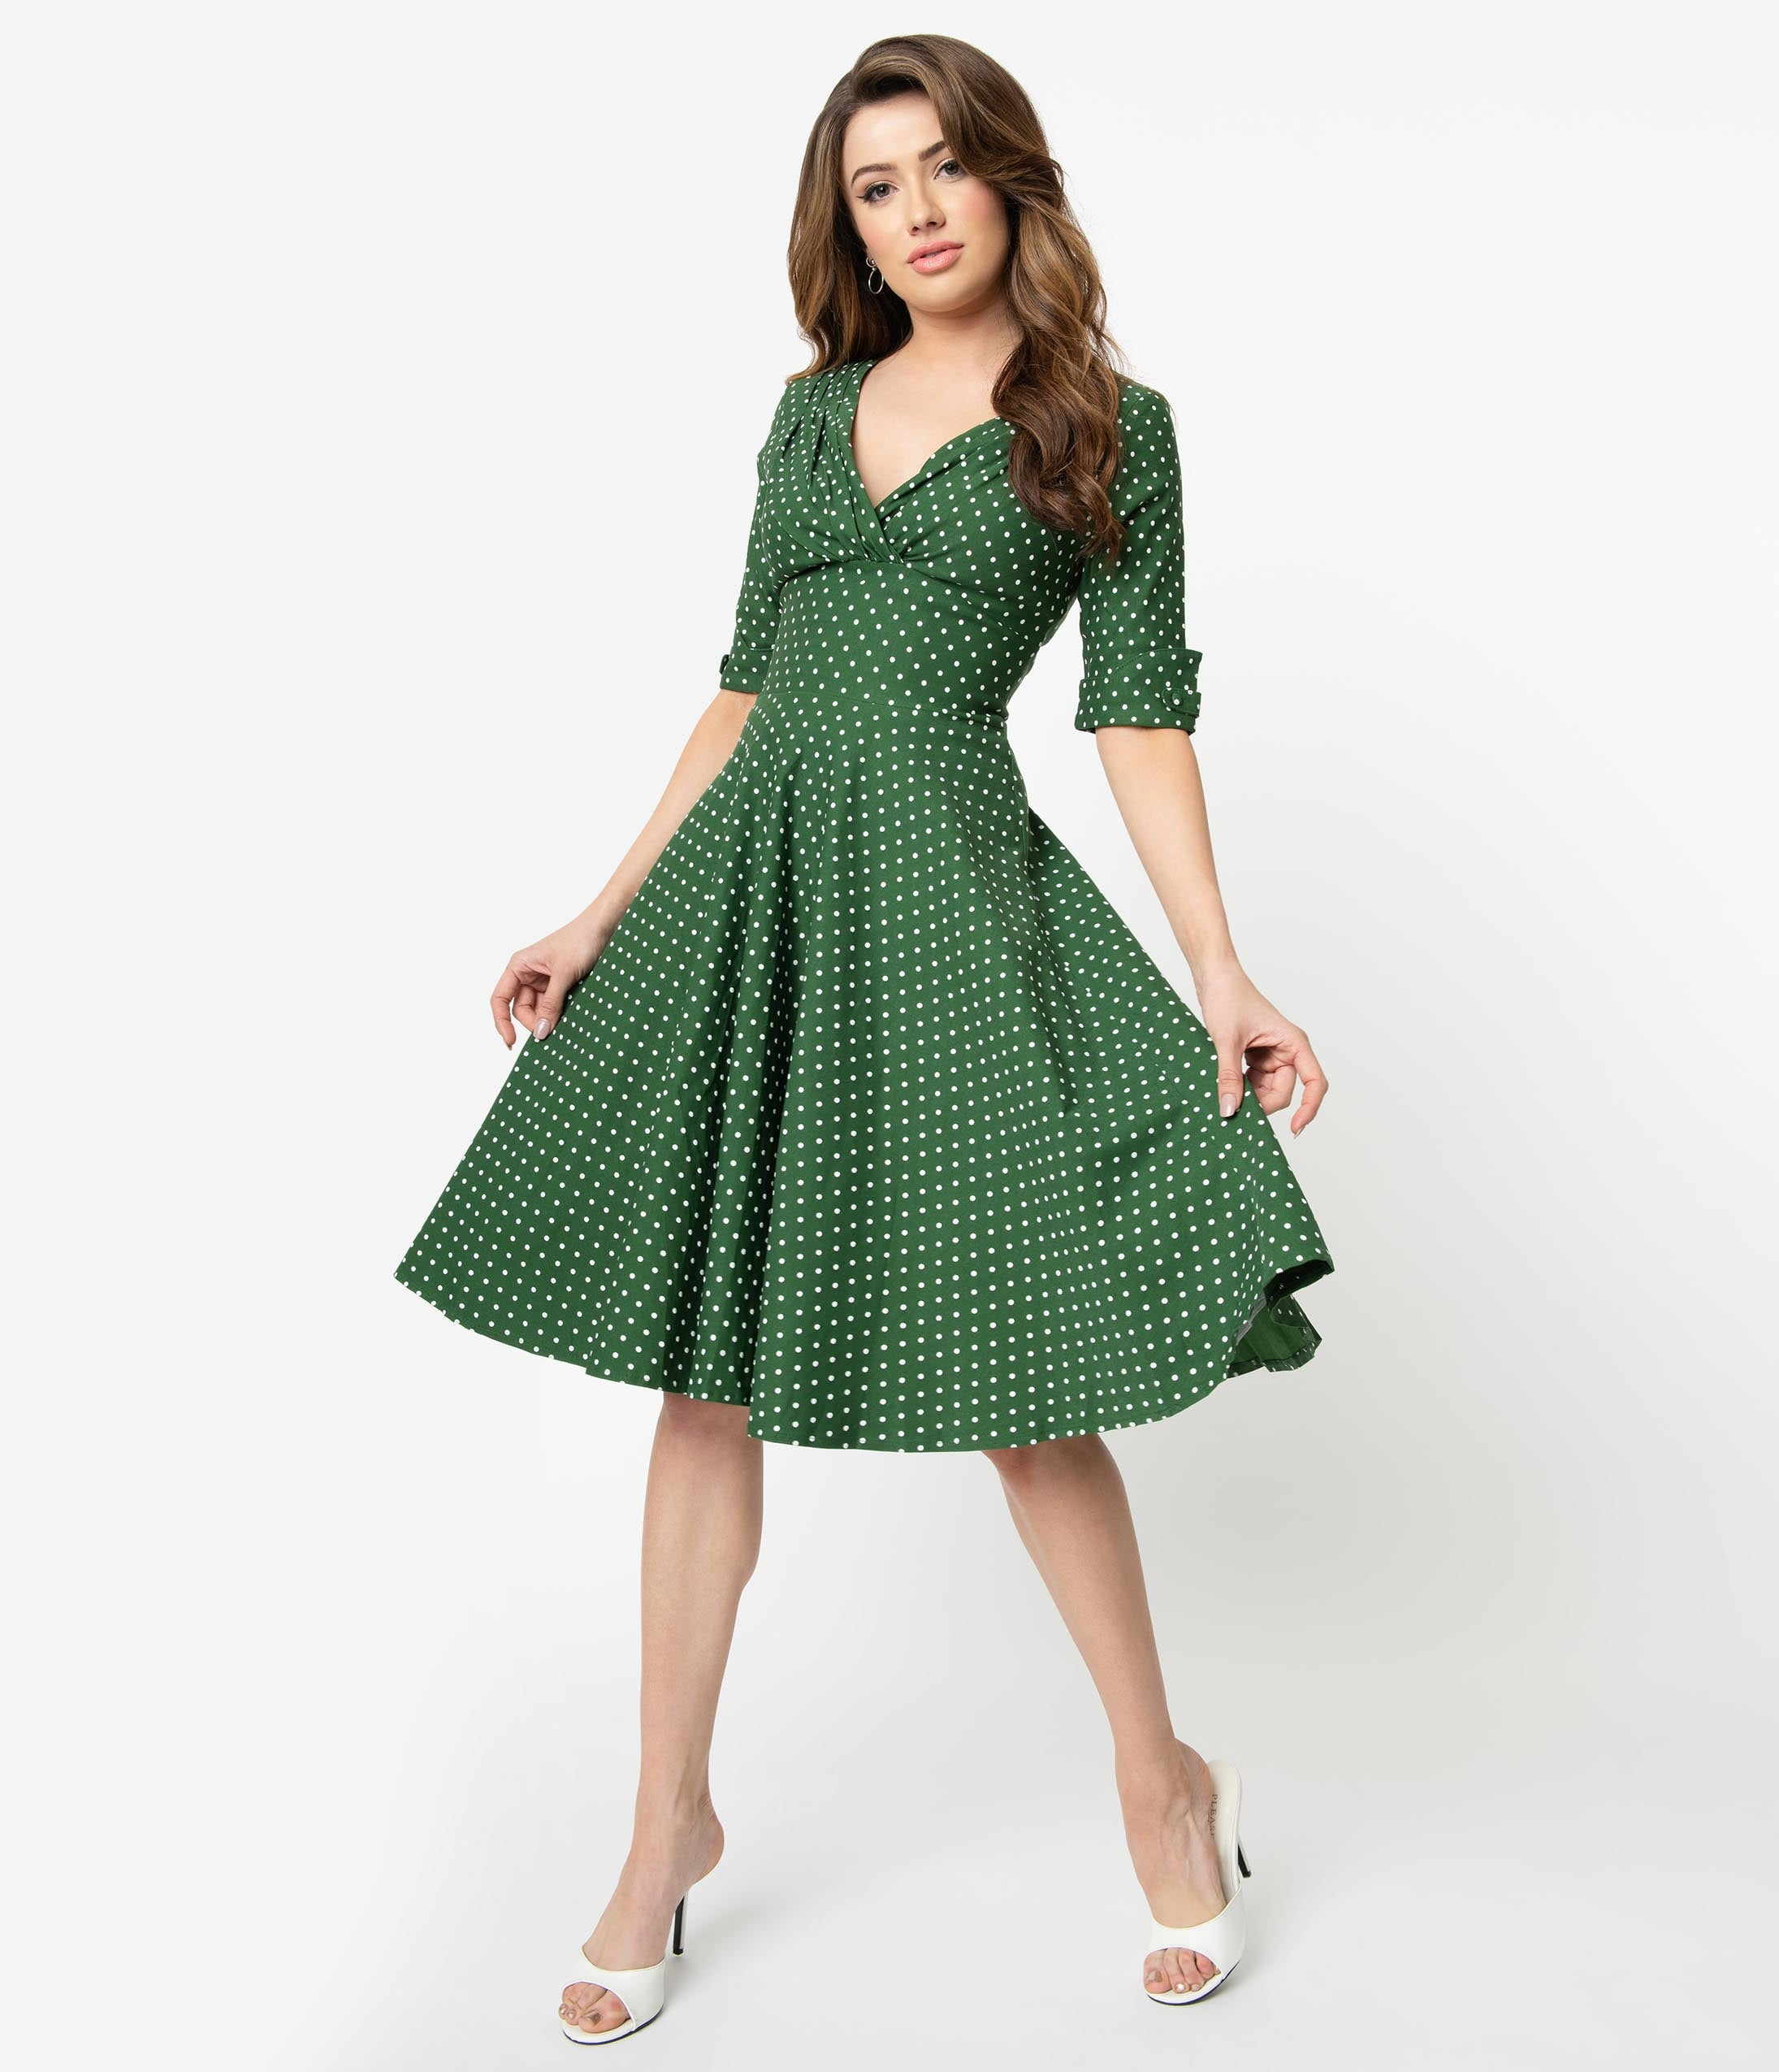 1950s Plus Size Dresses, Swing Dresses Unique Vintage 1950S Green  White Pin Dot Delores Swing Dress With Sleeves $92.00 AT vintagedancer.com